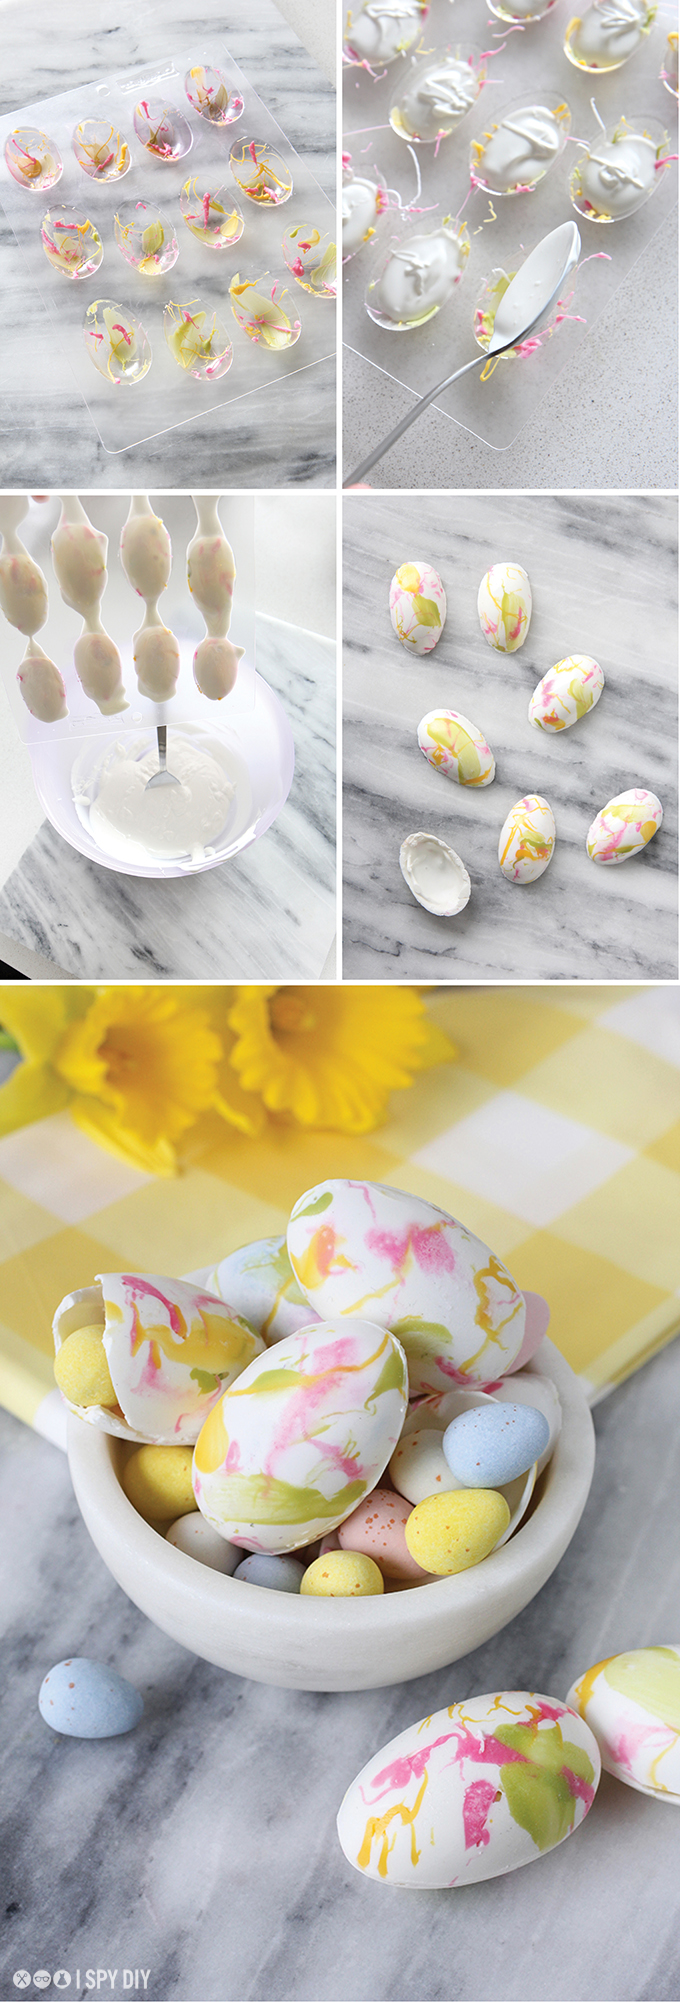 ispydiy_chocolateegg_steps